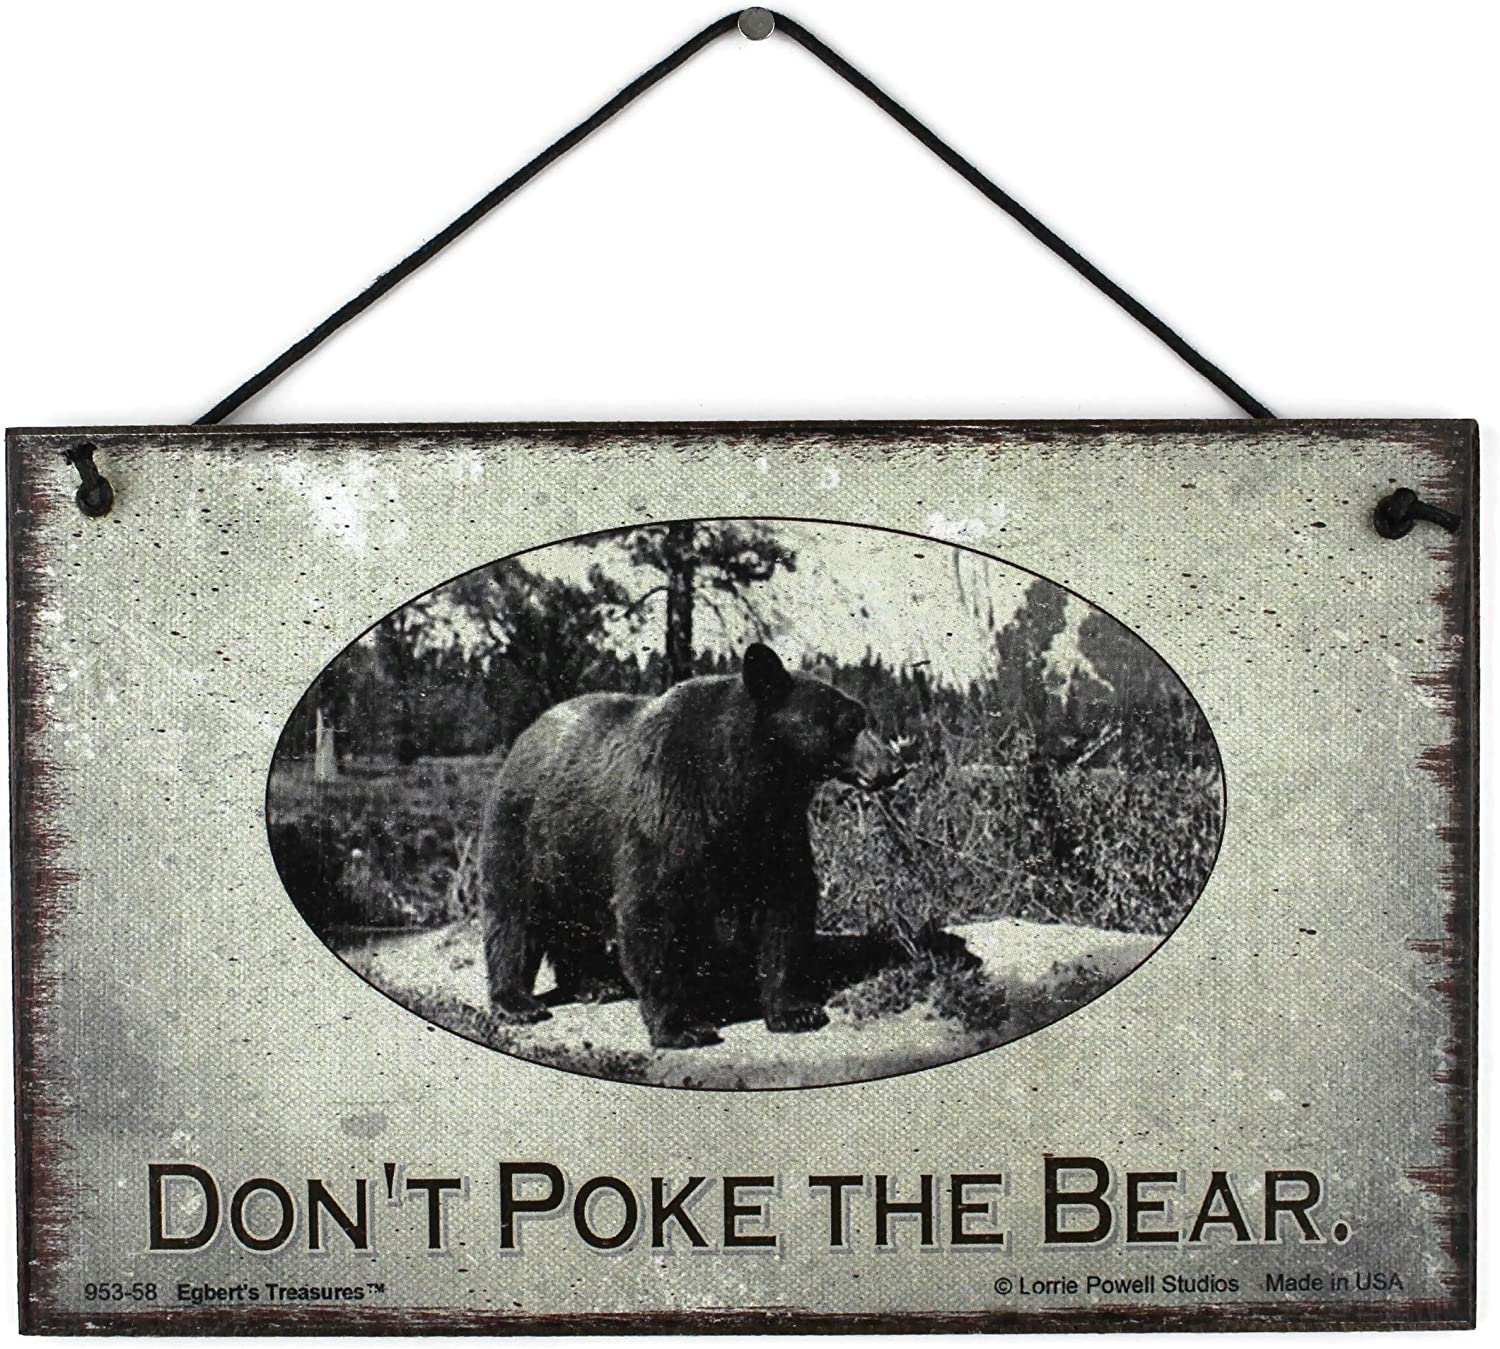 Egbert's Treasures 5x8 Vintage Style Sign Saying, Don't Poke The Bear. Decorative Fun Universal Household Family Signs for Your Home or Man Cave